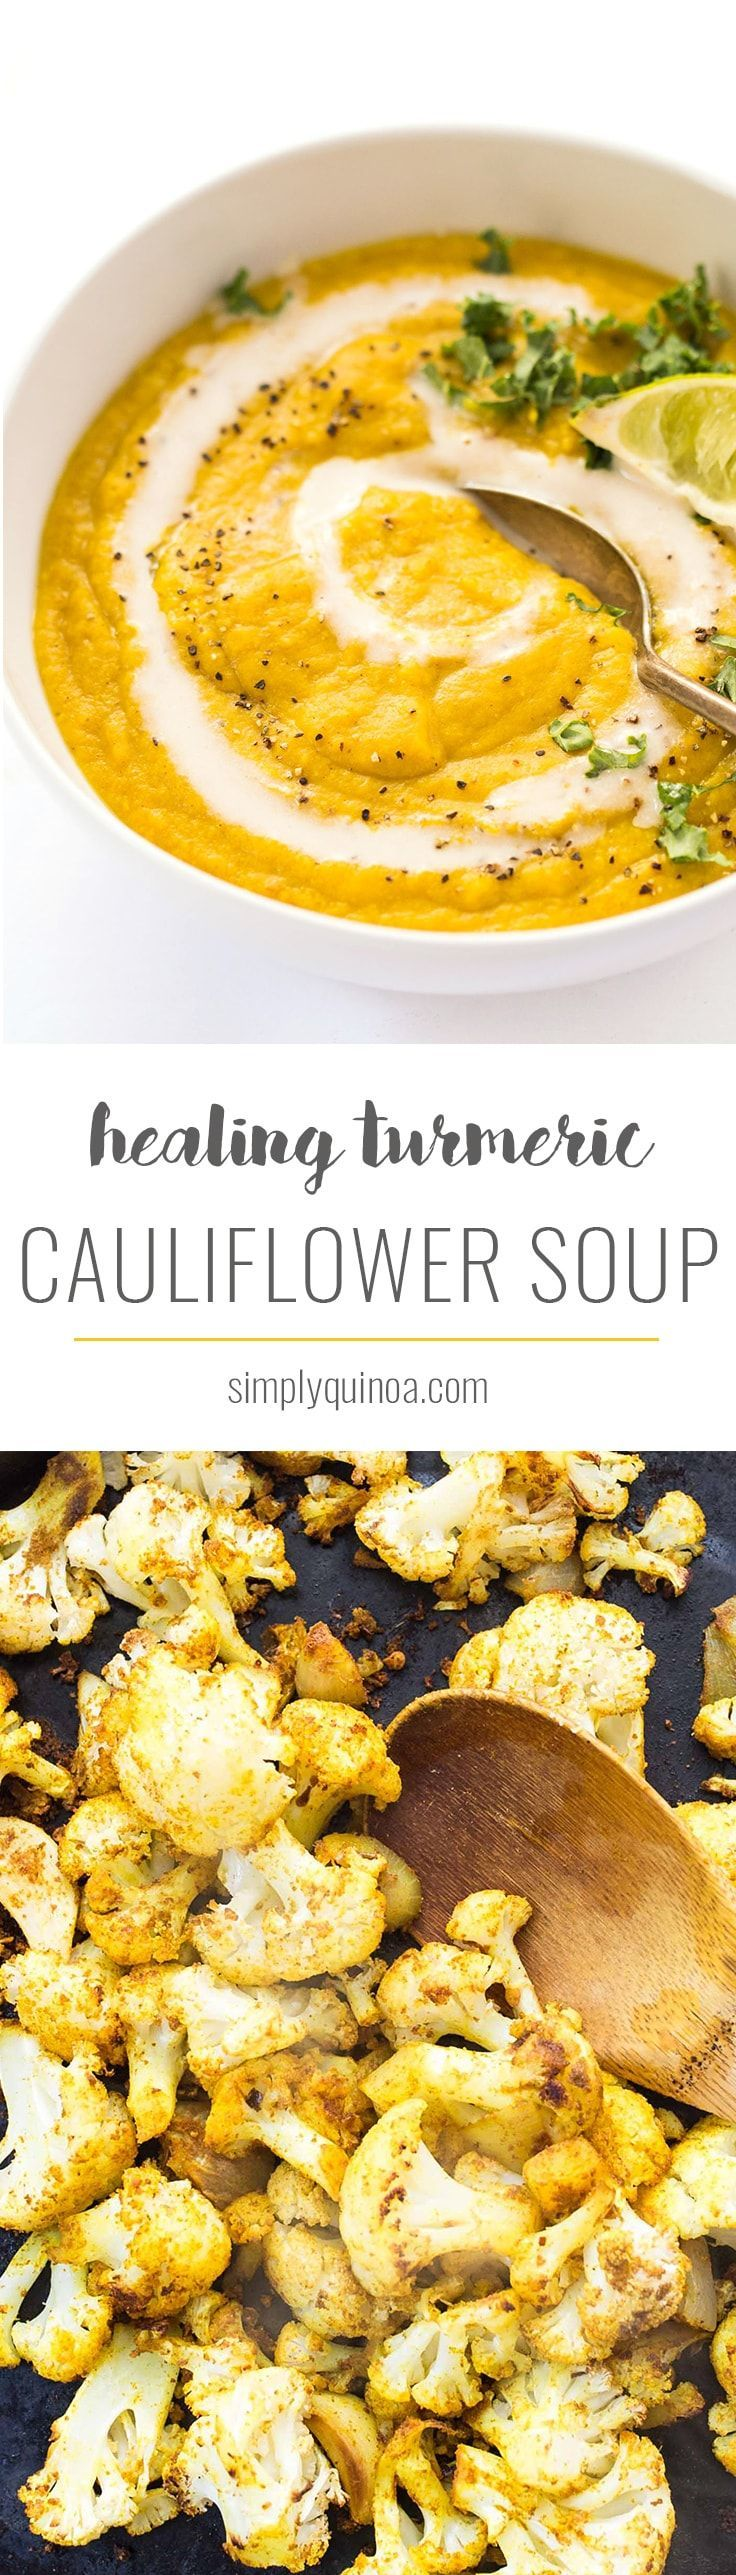 This healing Turmeric Cauliflower Soup is easy to make, packed with nutrients and SO flavorful!